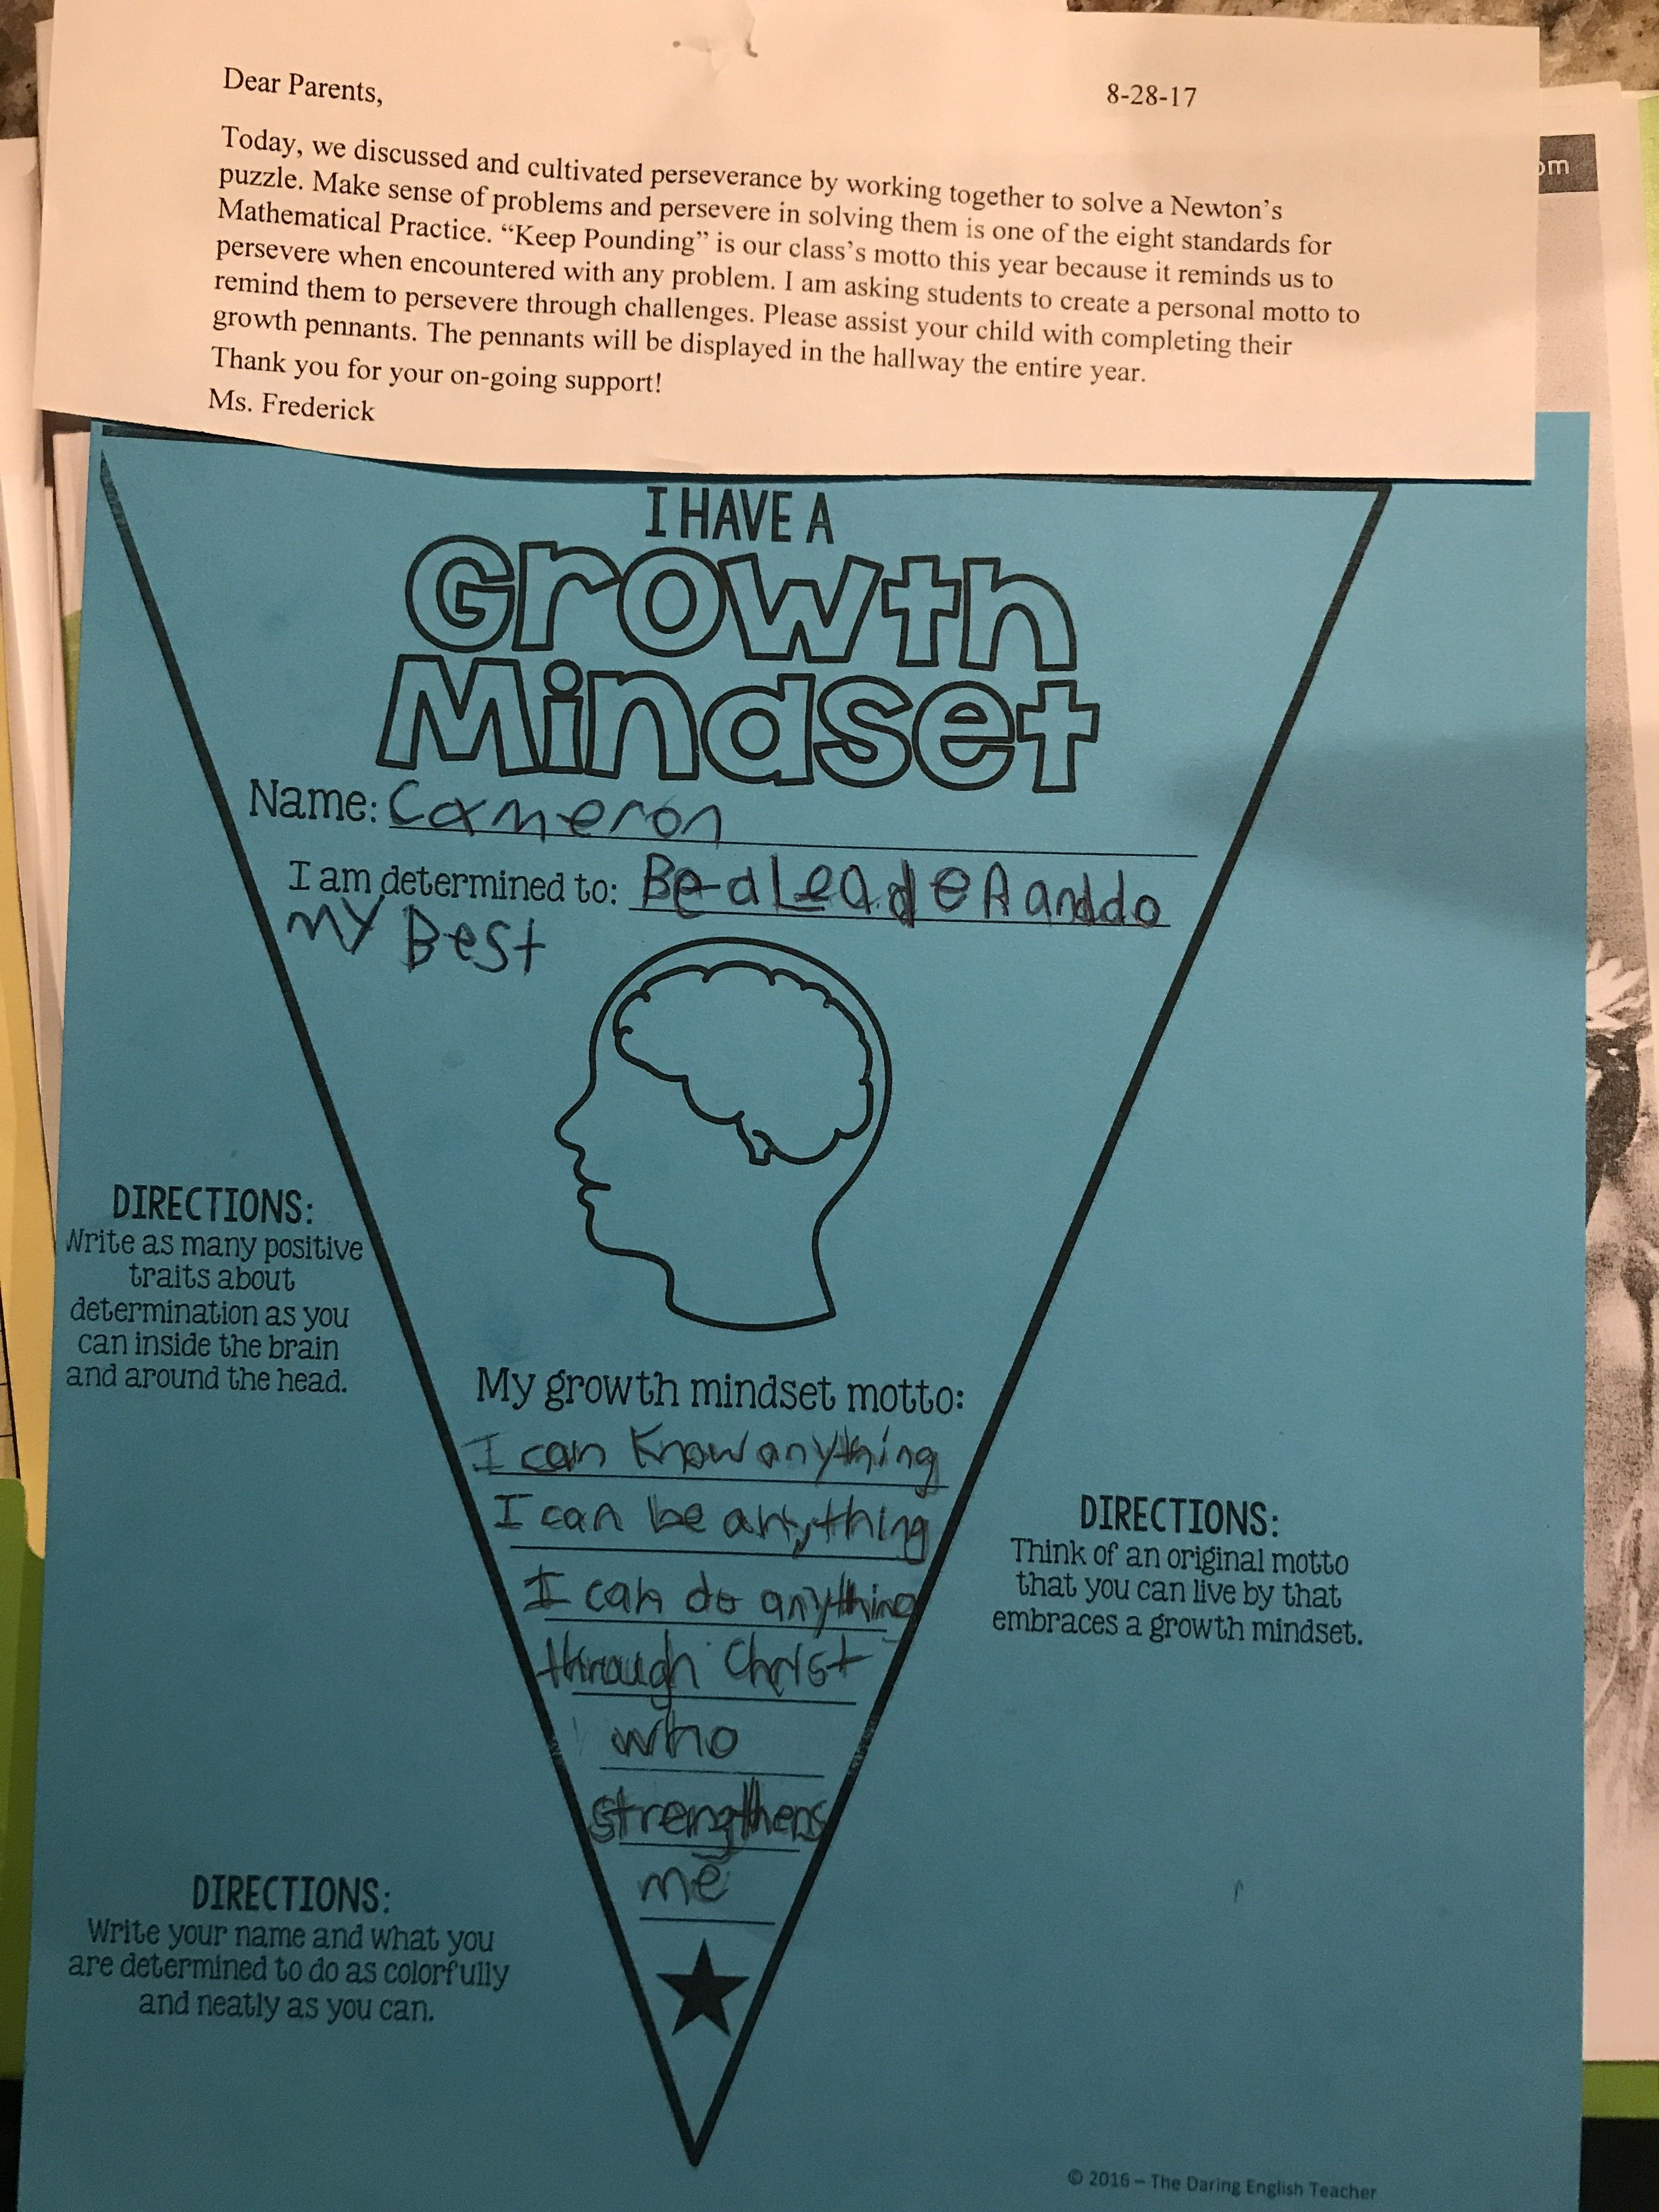 How Are You Encouraging Your Students To Have A Growth